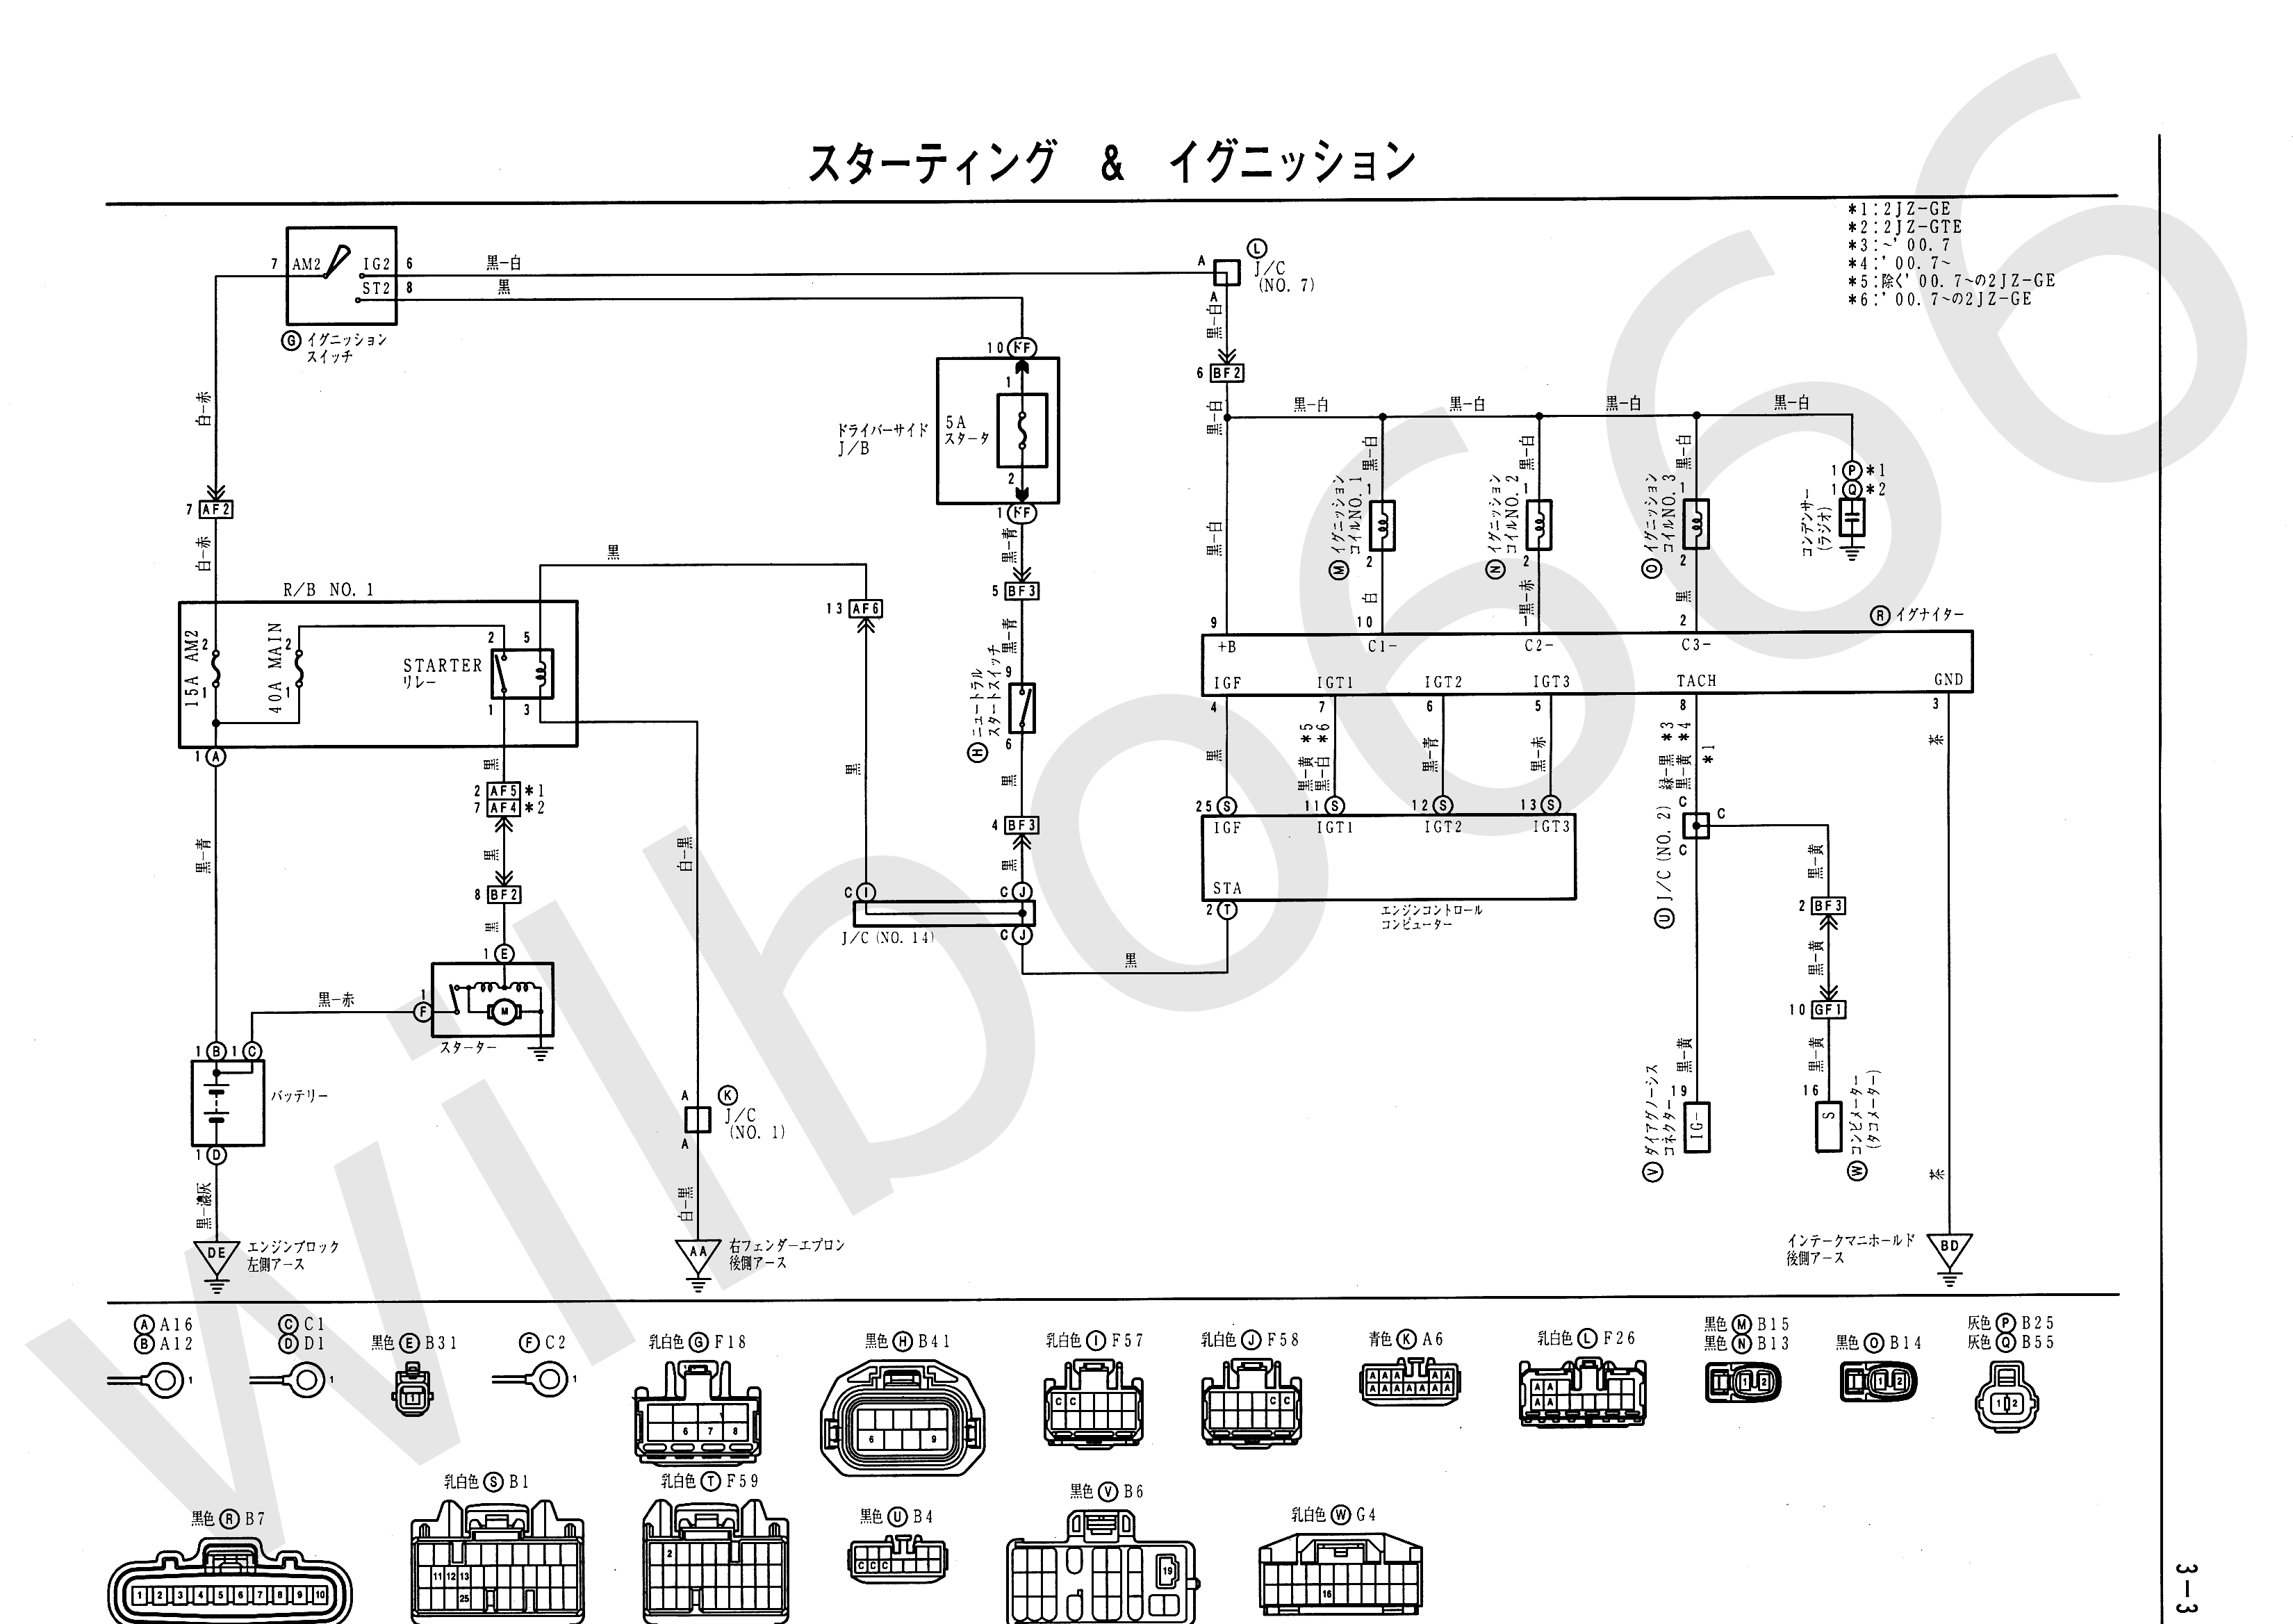 JZS161 Electrical Wiring Diagram 6748505 3 3 wilbo666 2jz gte vvti jzs161 aristo engine wiring  at alyssarenee.co